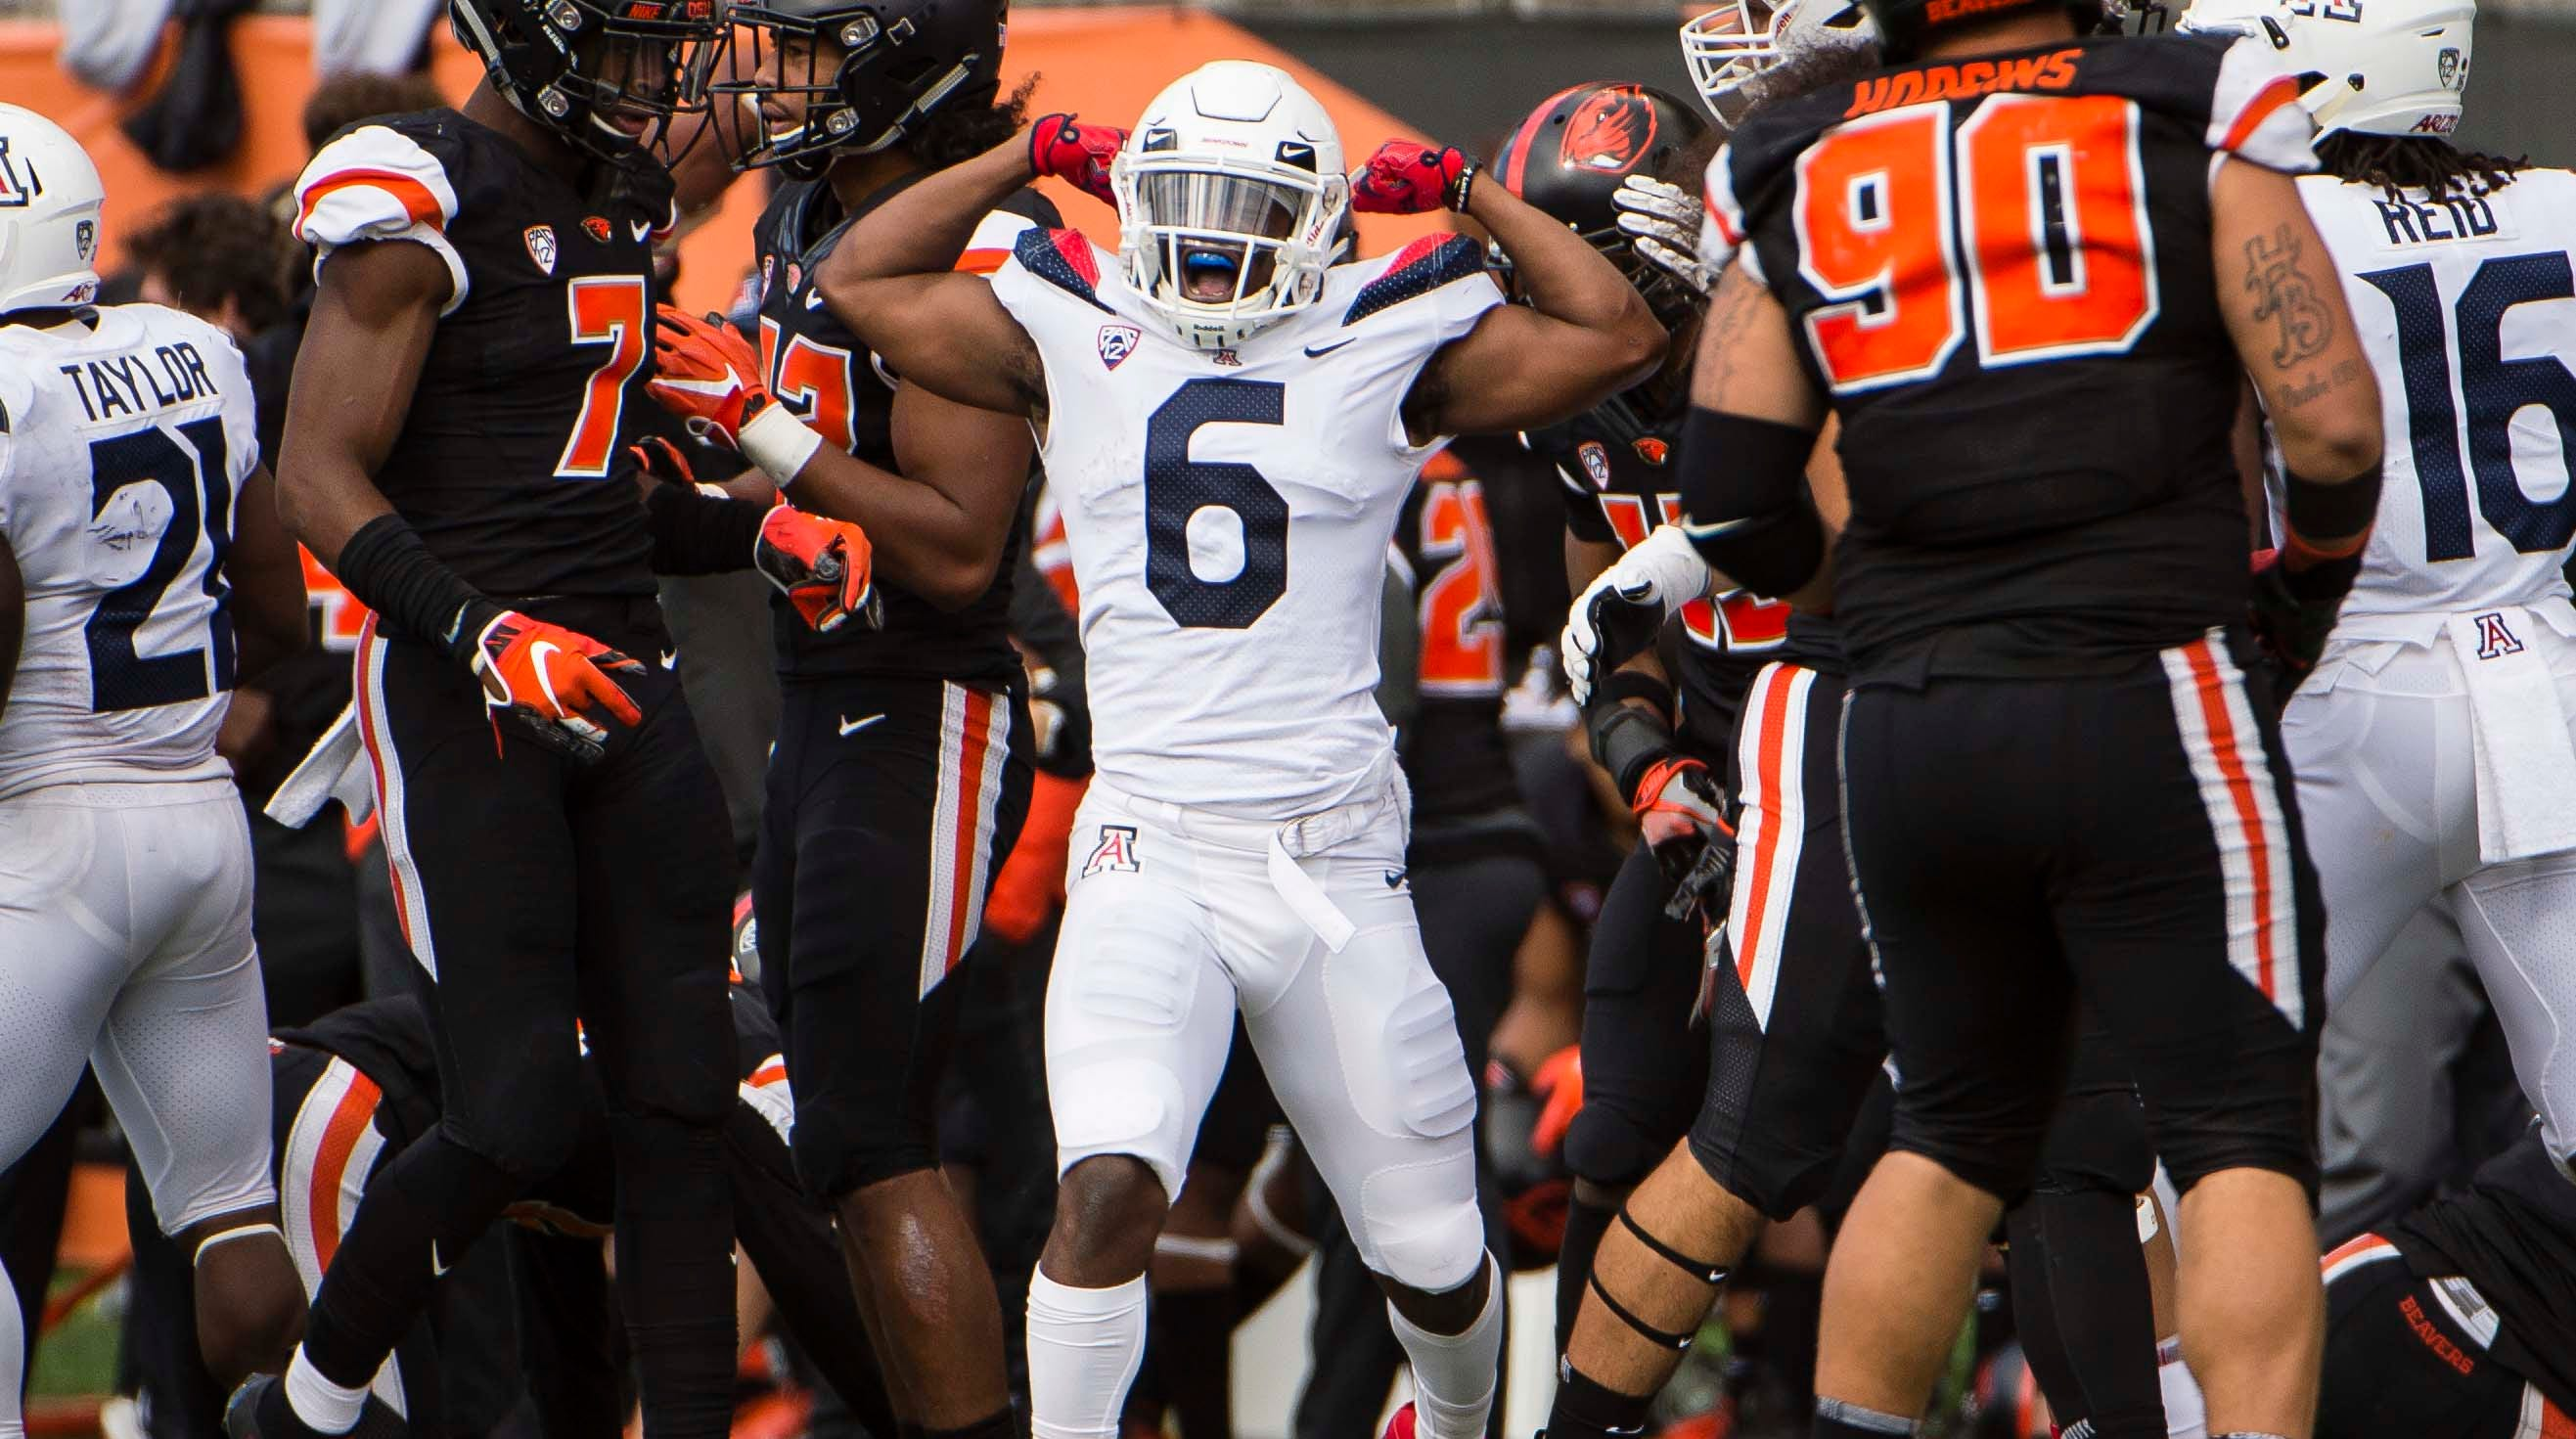 Sep 22, 2018; Corvallis, OR, USA; Arizona Wildcats wide receiver Shun Brown (6) celebrates after picking up a first down during the second half against the Oregon State Beavers at Reser Stadium. The Arizona Wildcats won 35-14. Mandatory Credit: Troy Wayrynen-USA TODAY Sports